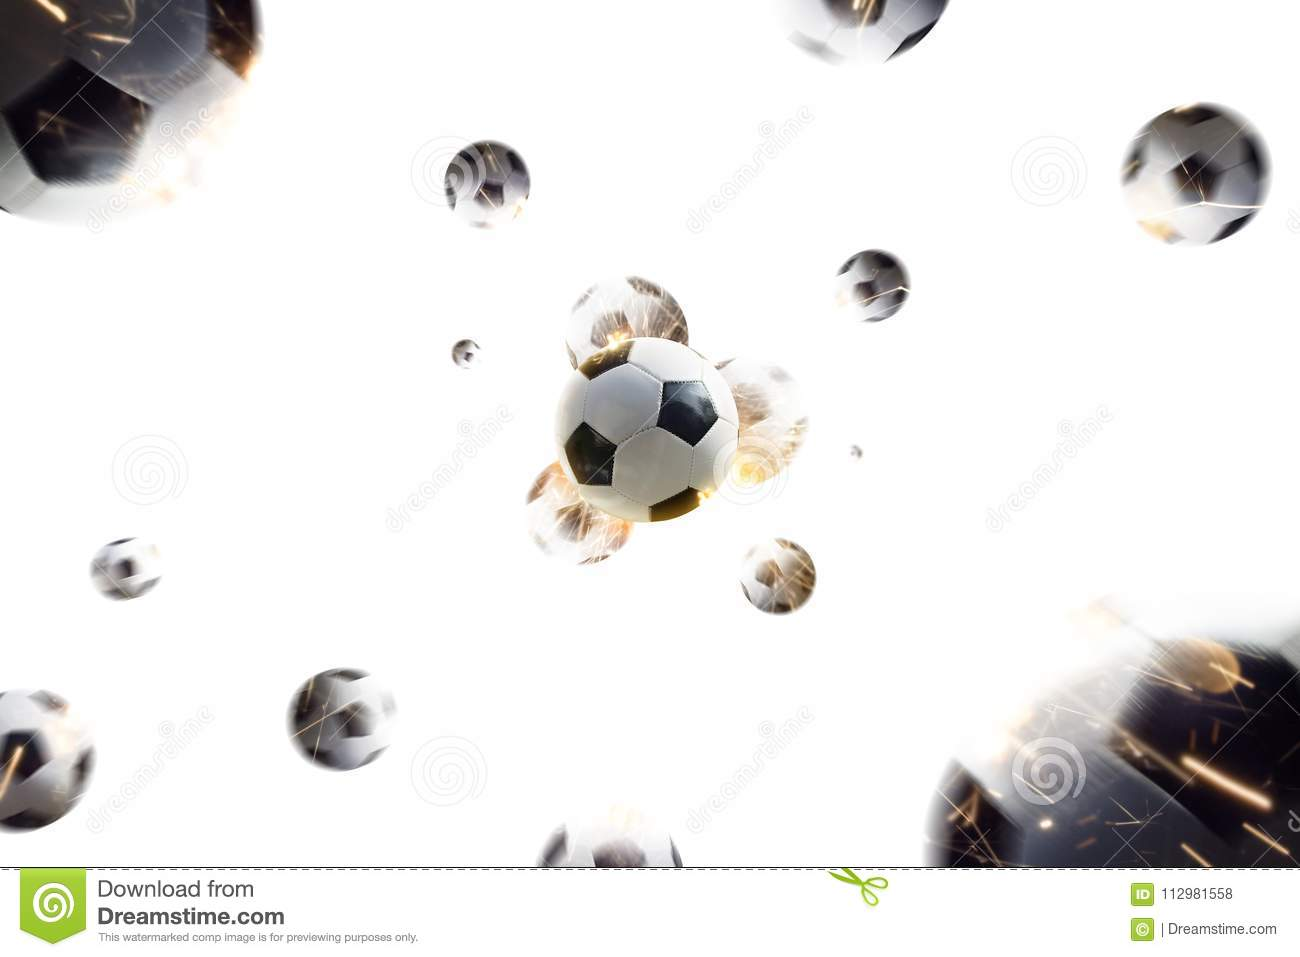 Soccer balls with fire sparks in action white isolate